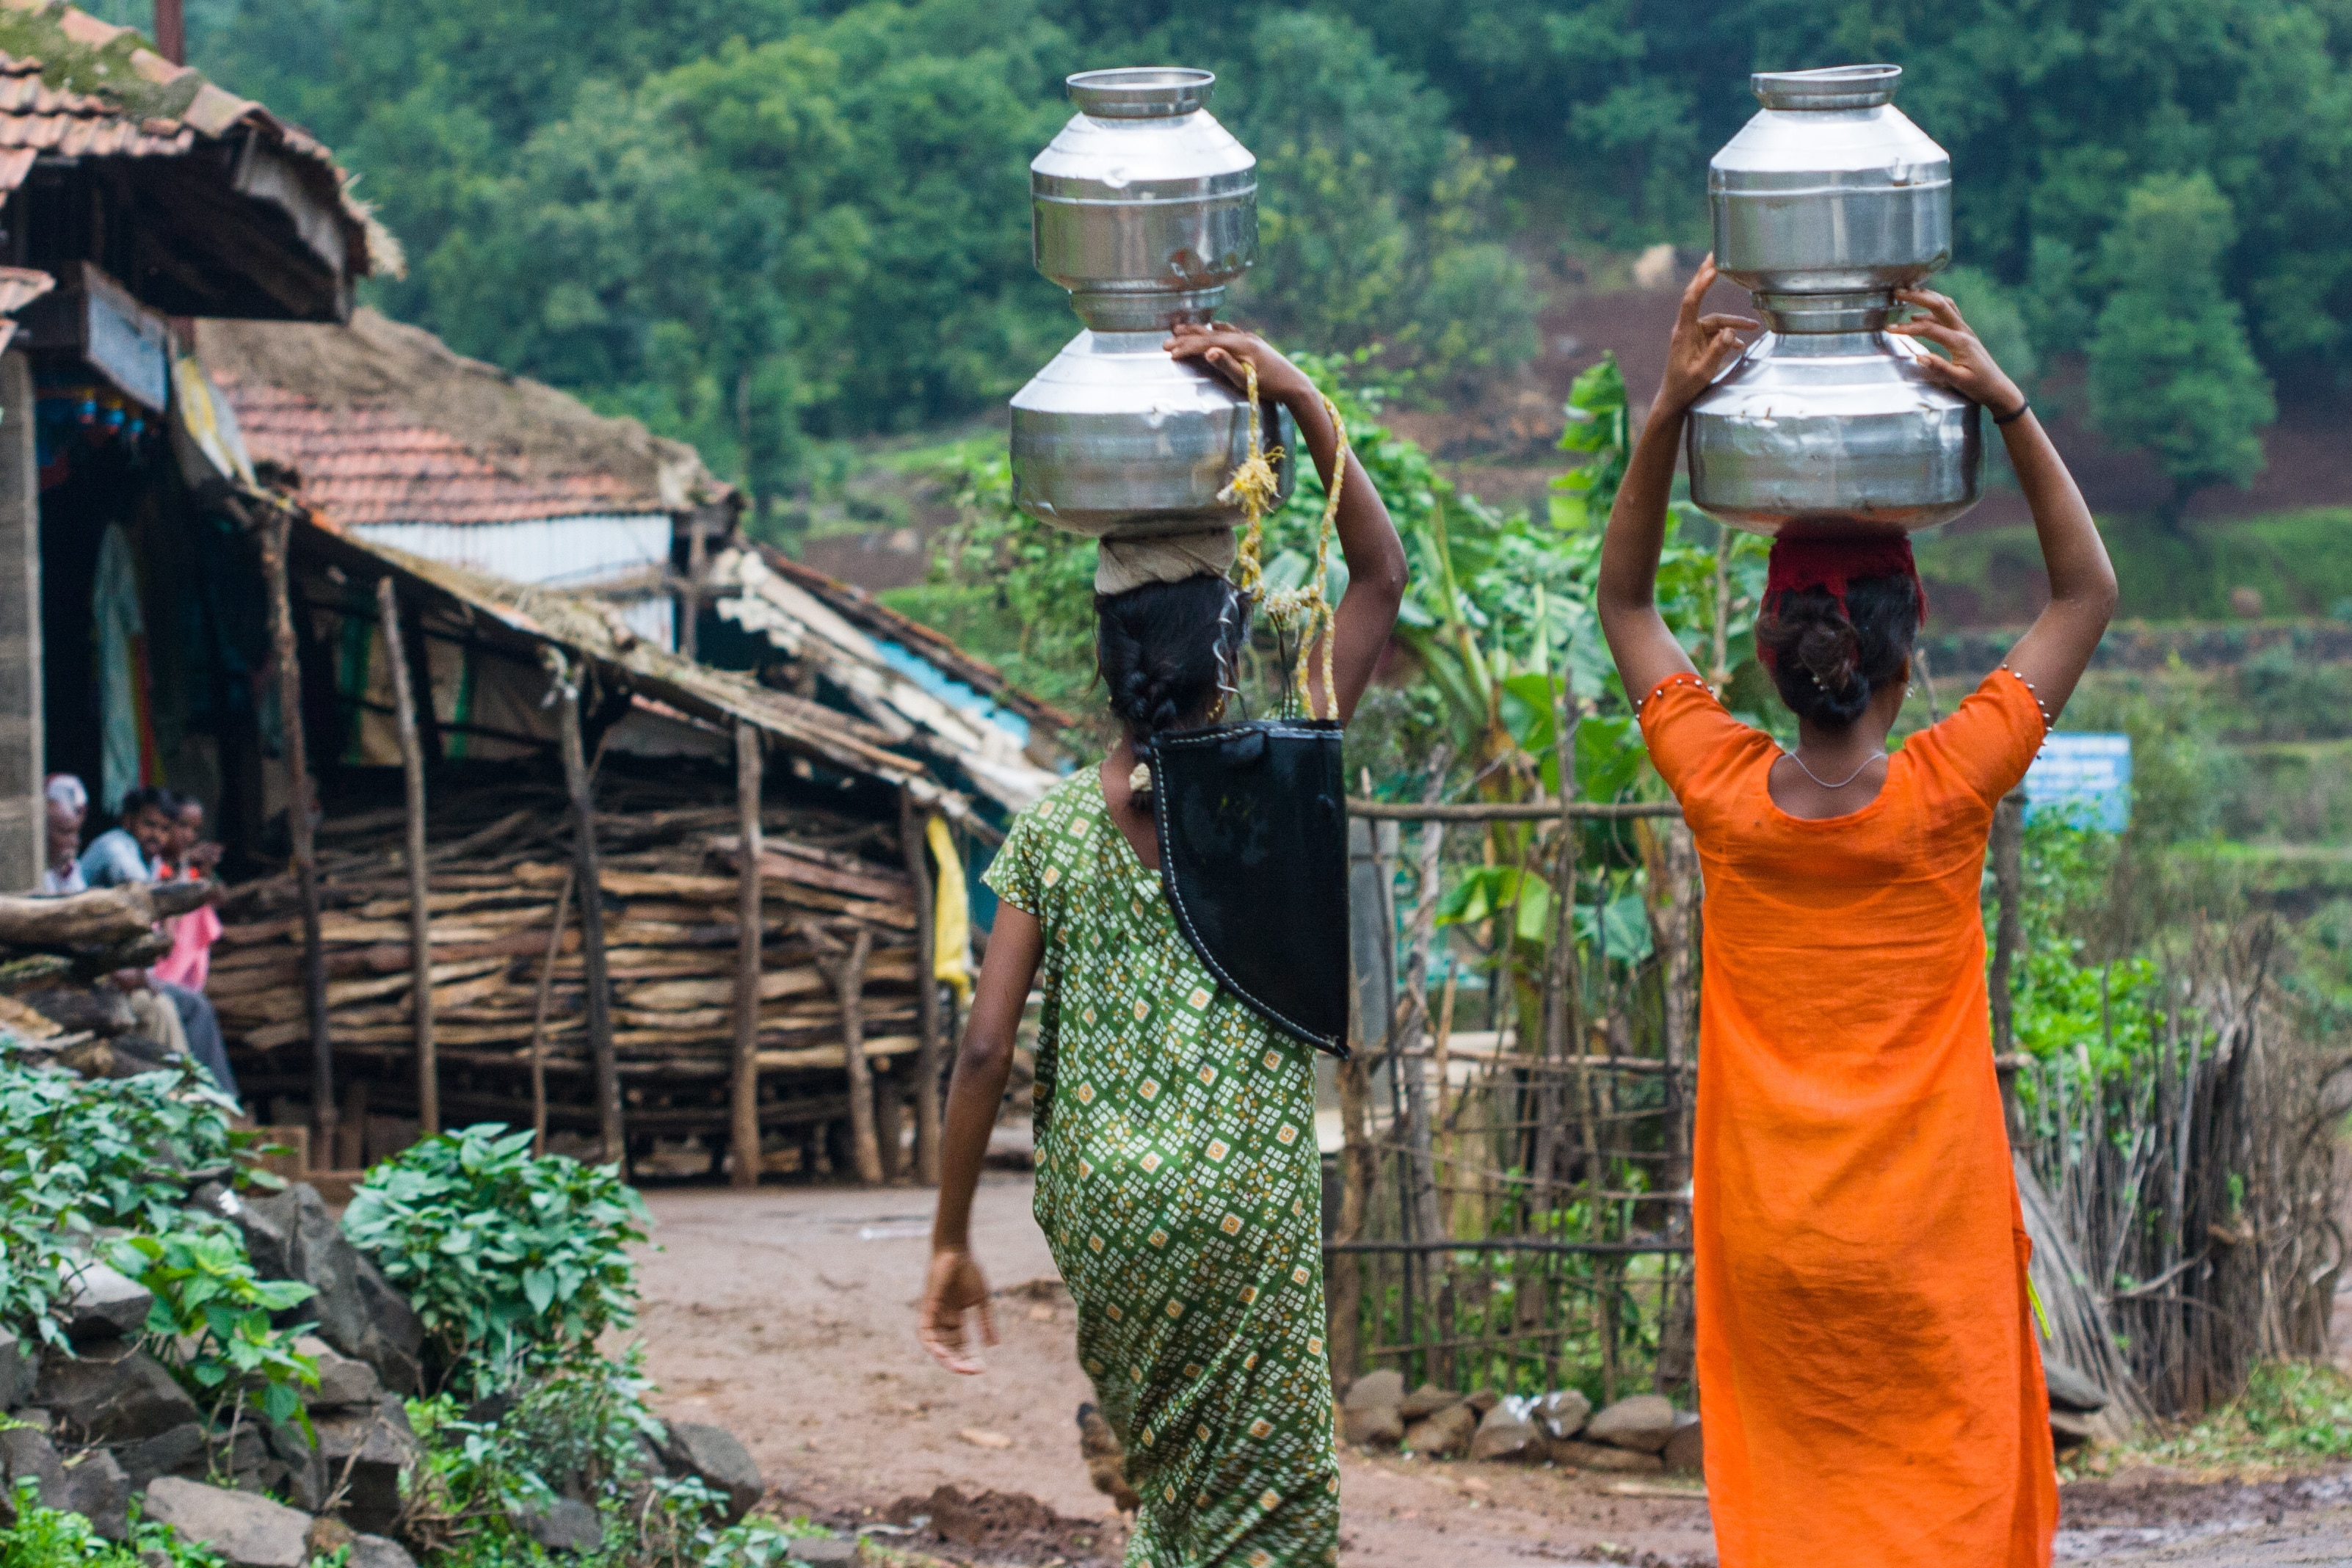 Villagers carry water in a remote part of India - Image